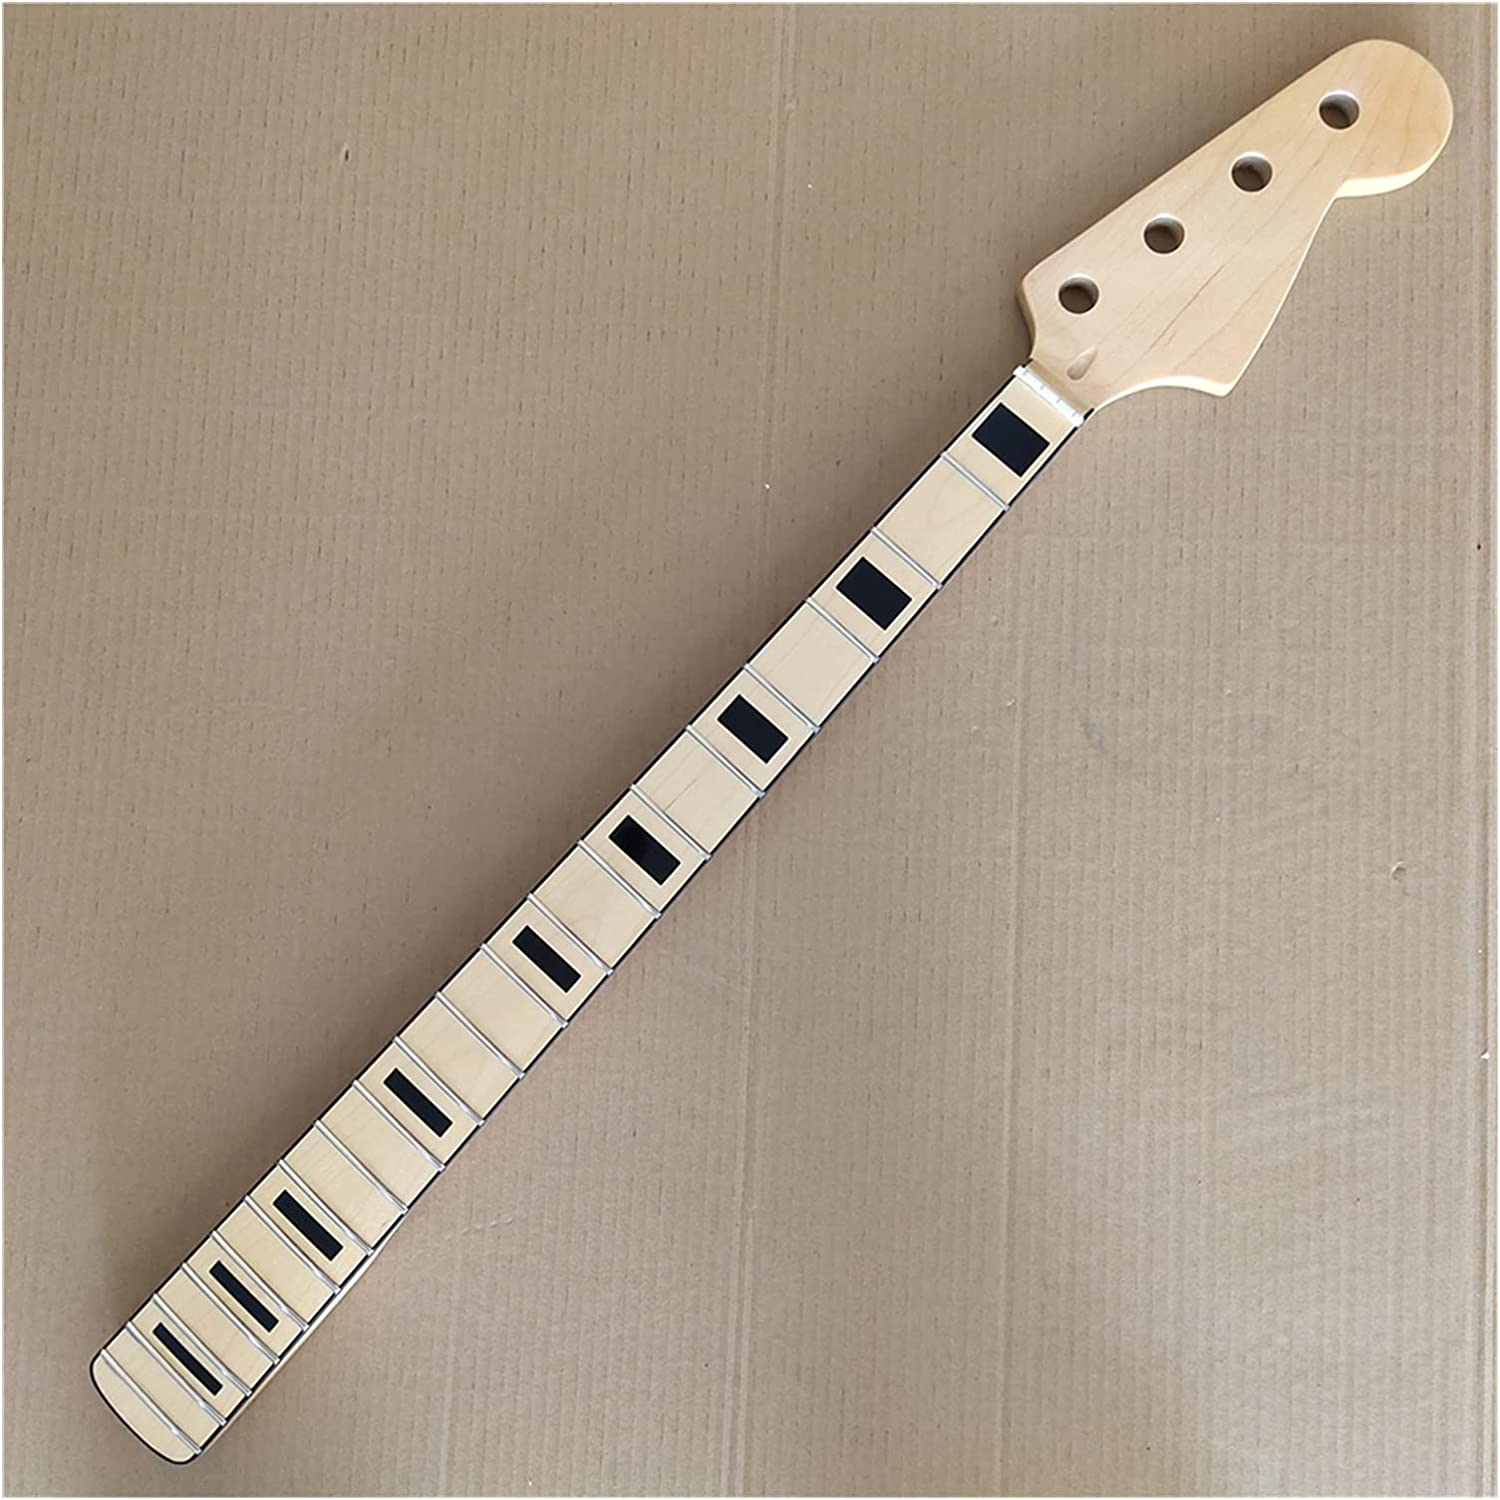 GaYouny Max Cheap super special price 87% OFF Guitar Neck Gloss Maple Part Bass 4 20 Frets